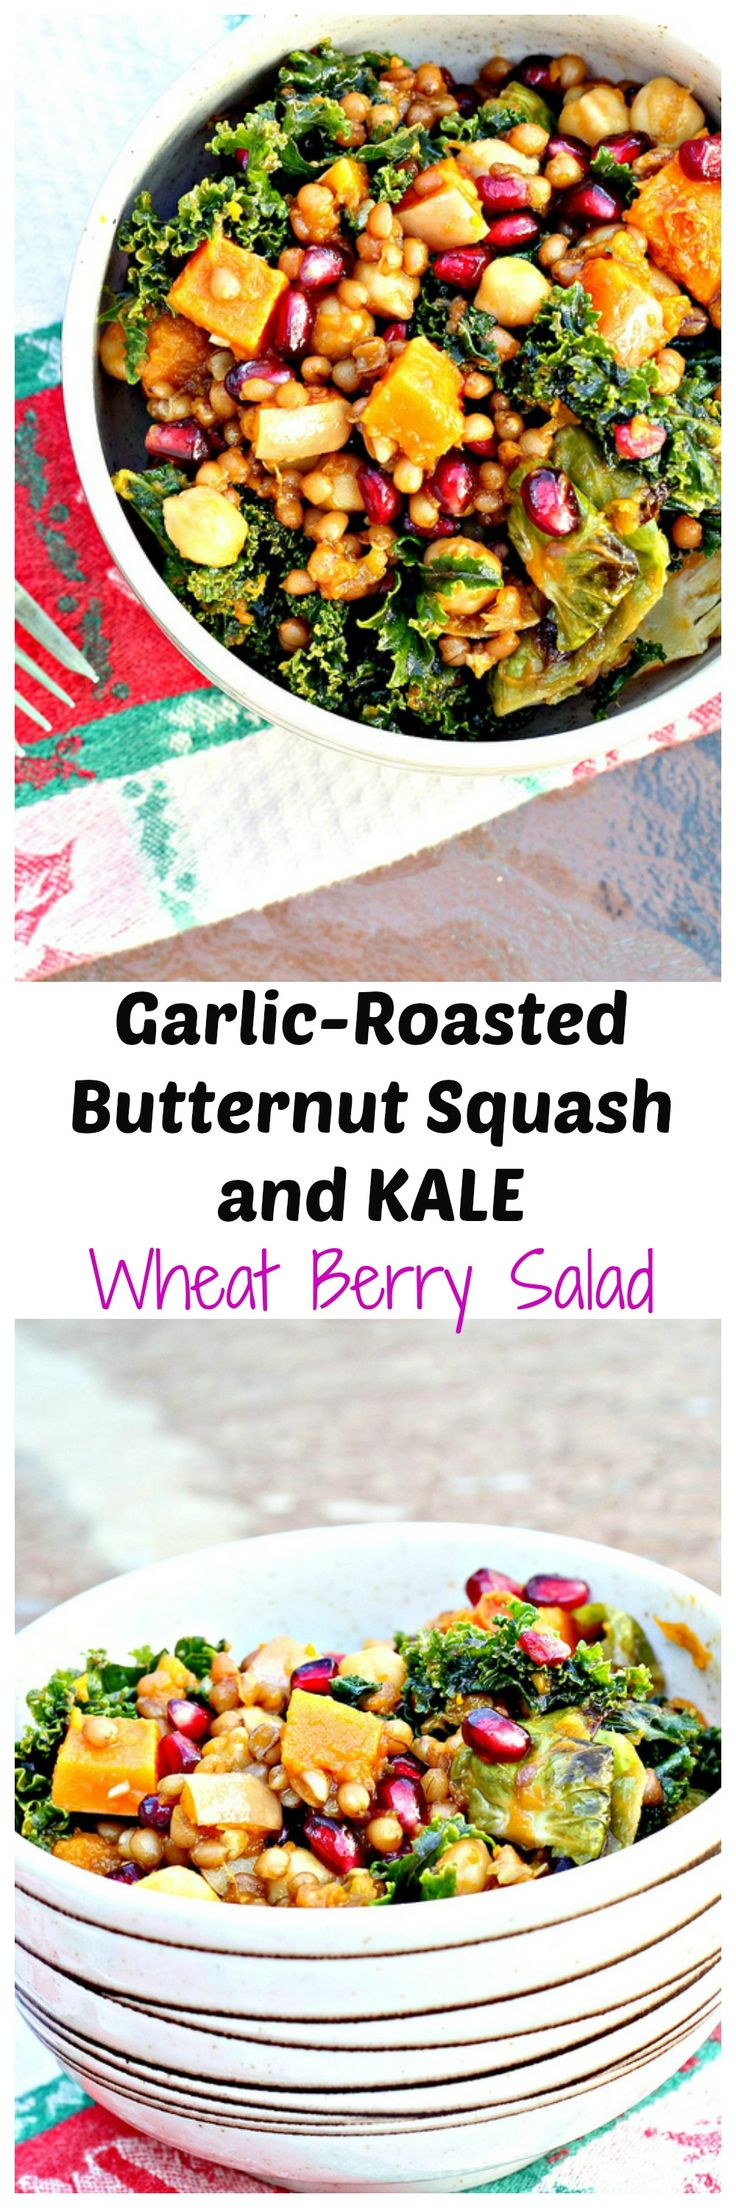 ... -Roasted Butternut Squash and Kale Wheatberry Salad with Pomegranate